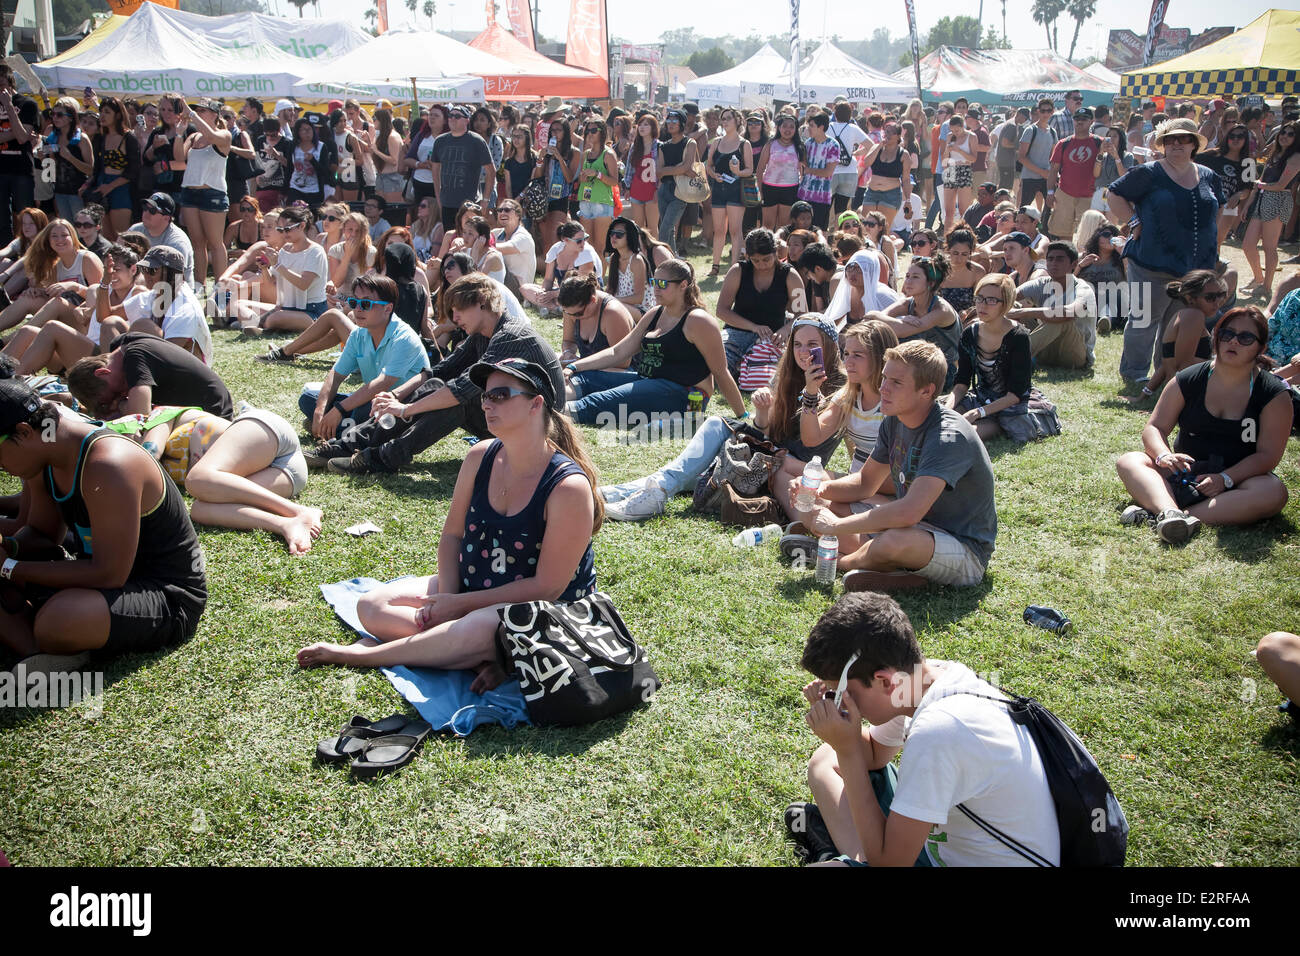 Pomona, CA, USA. 20th June, 2014. Fans at the Vans Warped Tour. Thousands of young alternative music fans turned Stock Photo